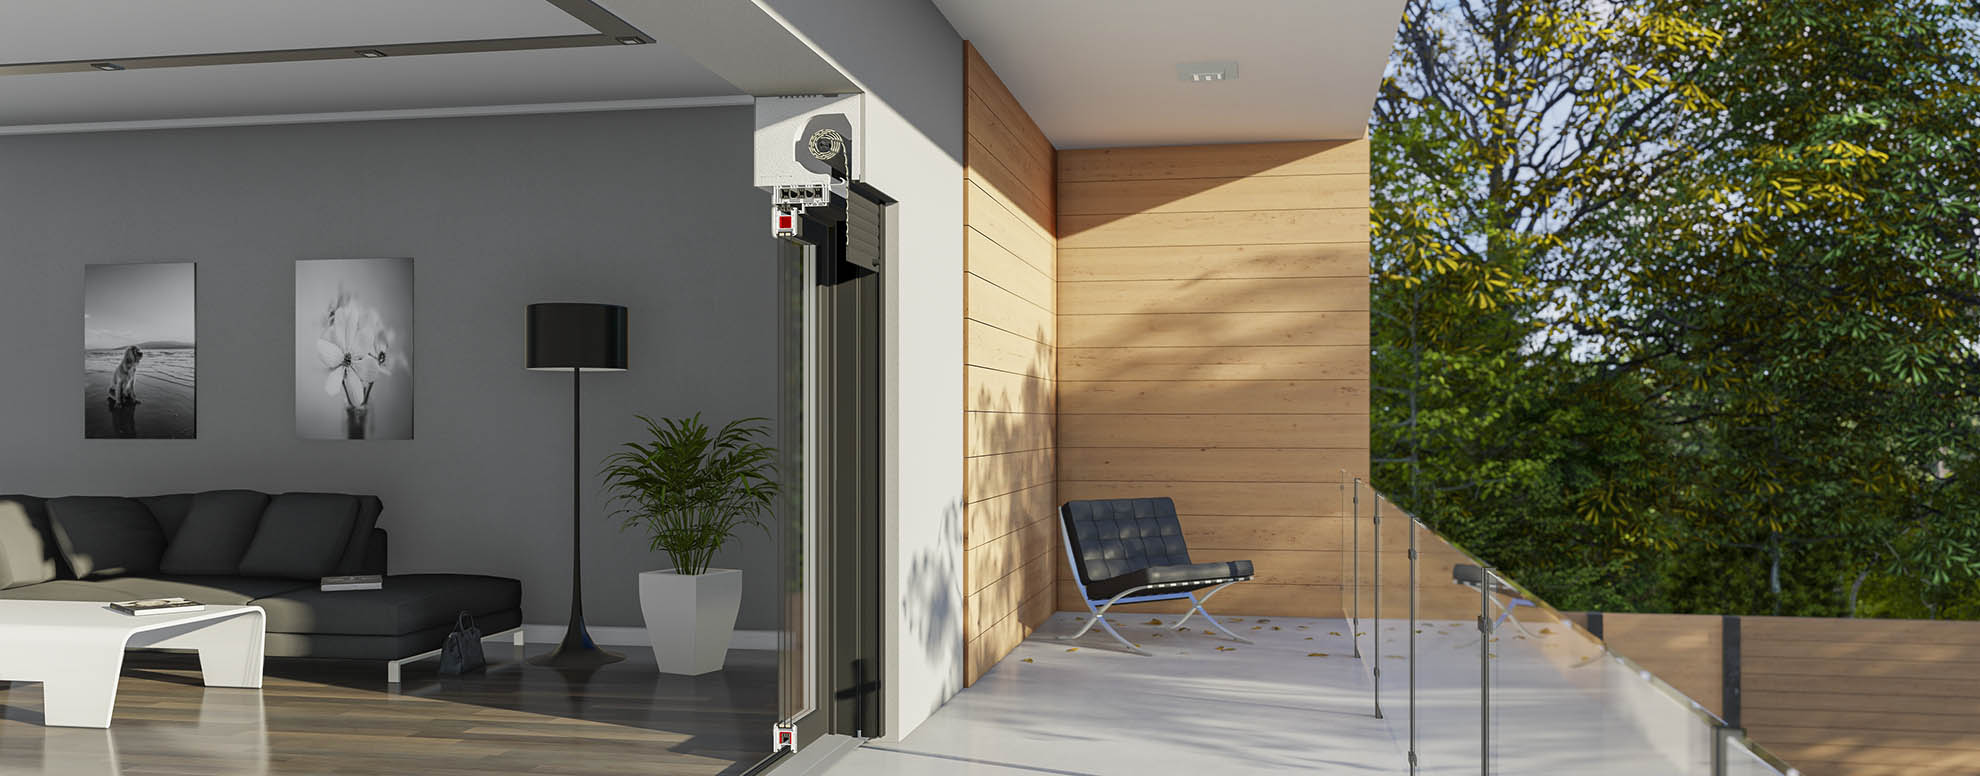 Drutex launches a new roller shutters system